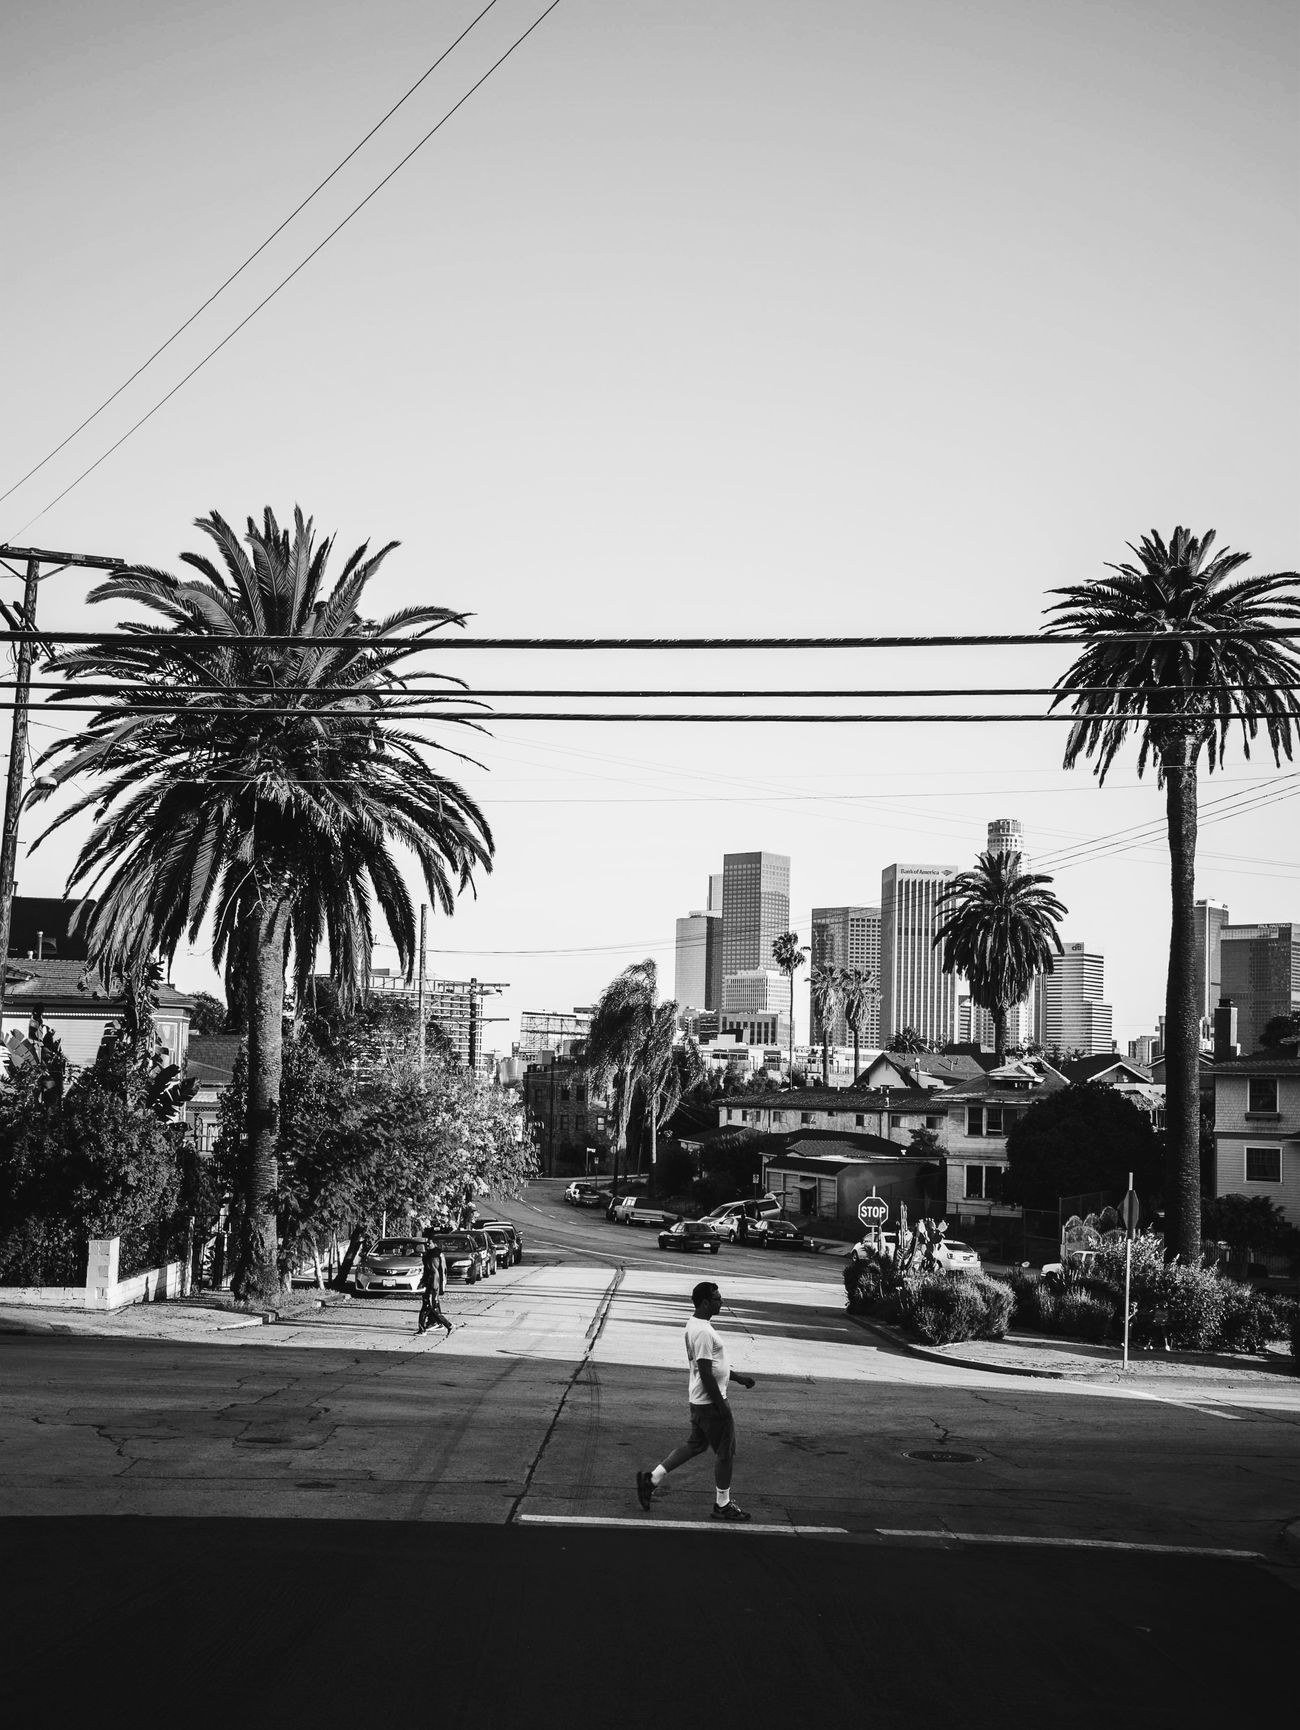 The Street Photographer - 2017 EyeEm Awards The Architect - 2017 EyeEm Awards MonochromePhotography LosAngelesCity Monochrome _ Collection WeekOnEyeEm EyeEm Best Shots Blackandwhite Palm Tree City City Life Outdoors Built Structure Building Exterior People Urban Exploration Urban Photography Streetphotography Urban Perspectives Real People Street Photography The Photojournalist - 2017 EyeEm Awards StillLife Streetphotography_bw